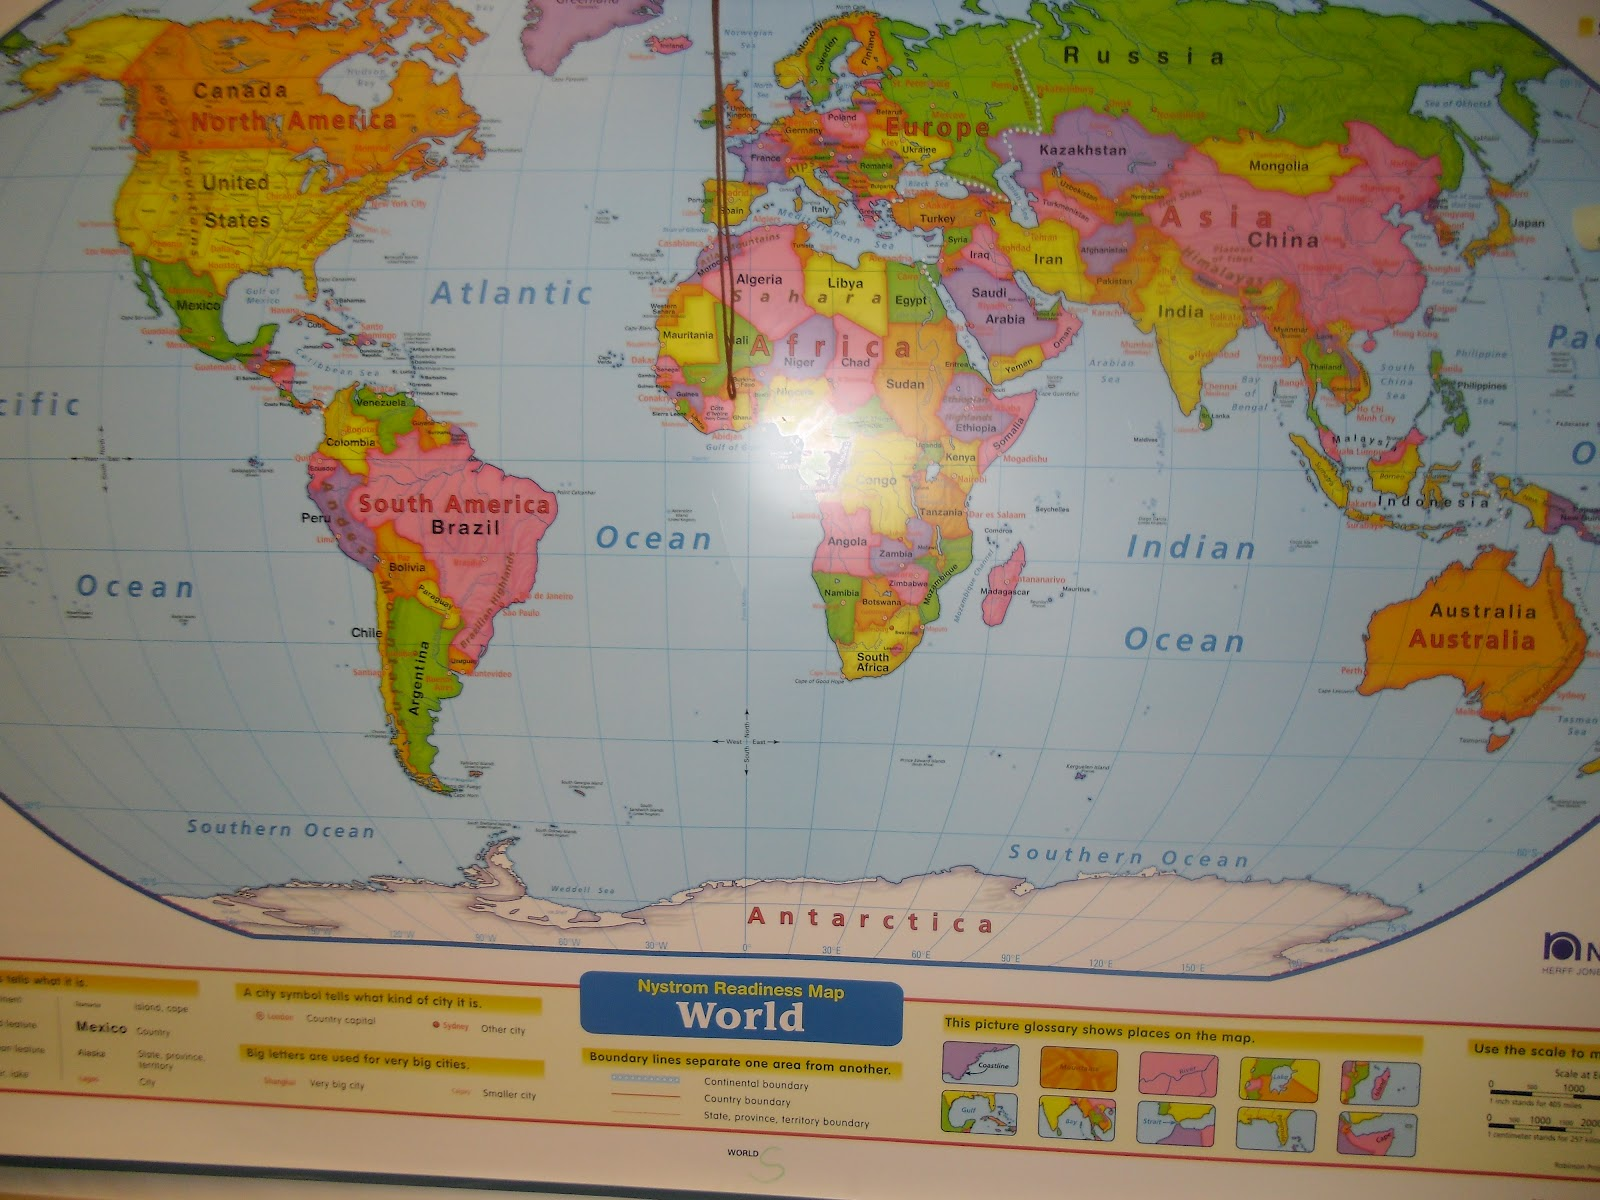 Patties Classroom Continents And Oceans Of The World